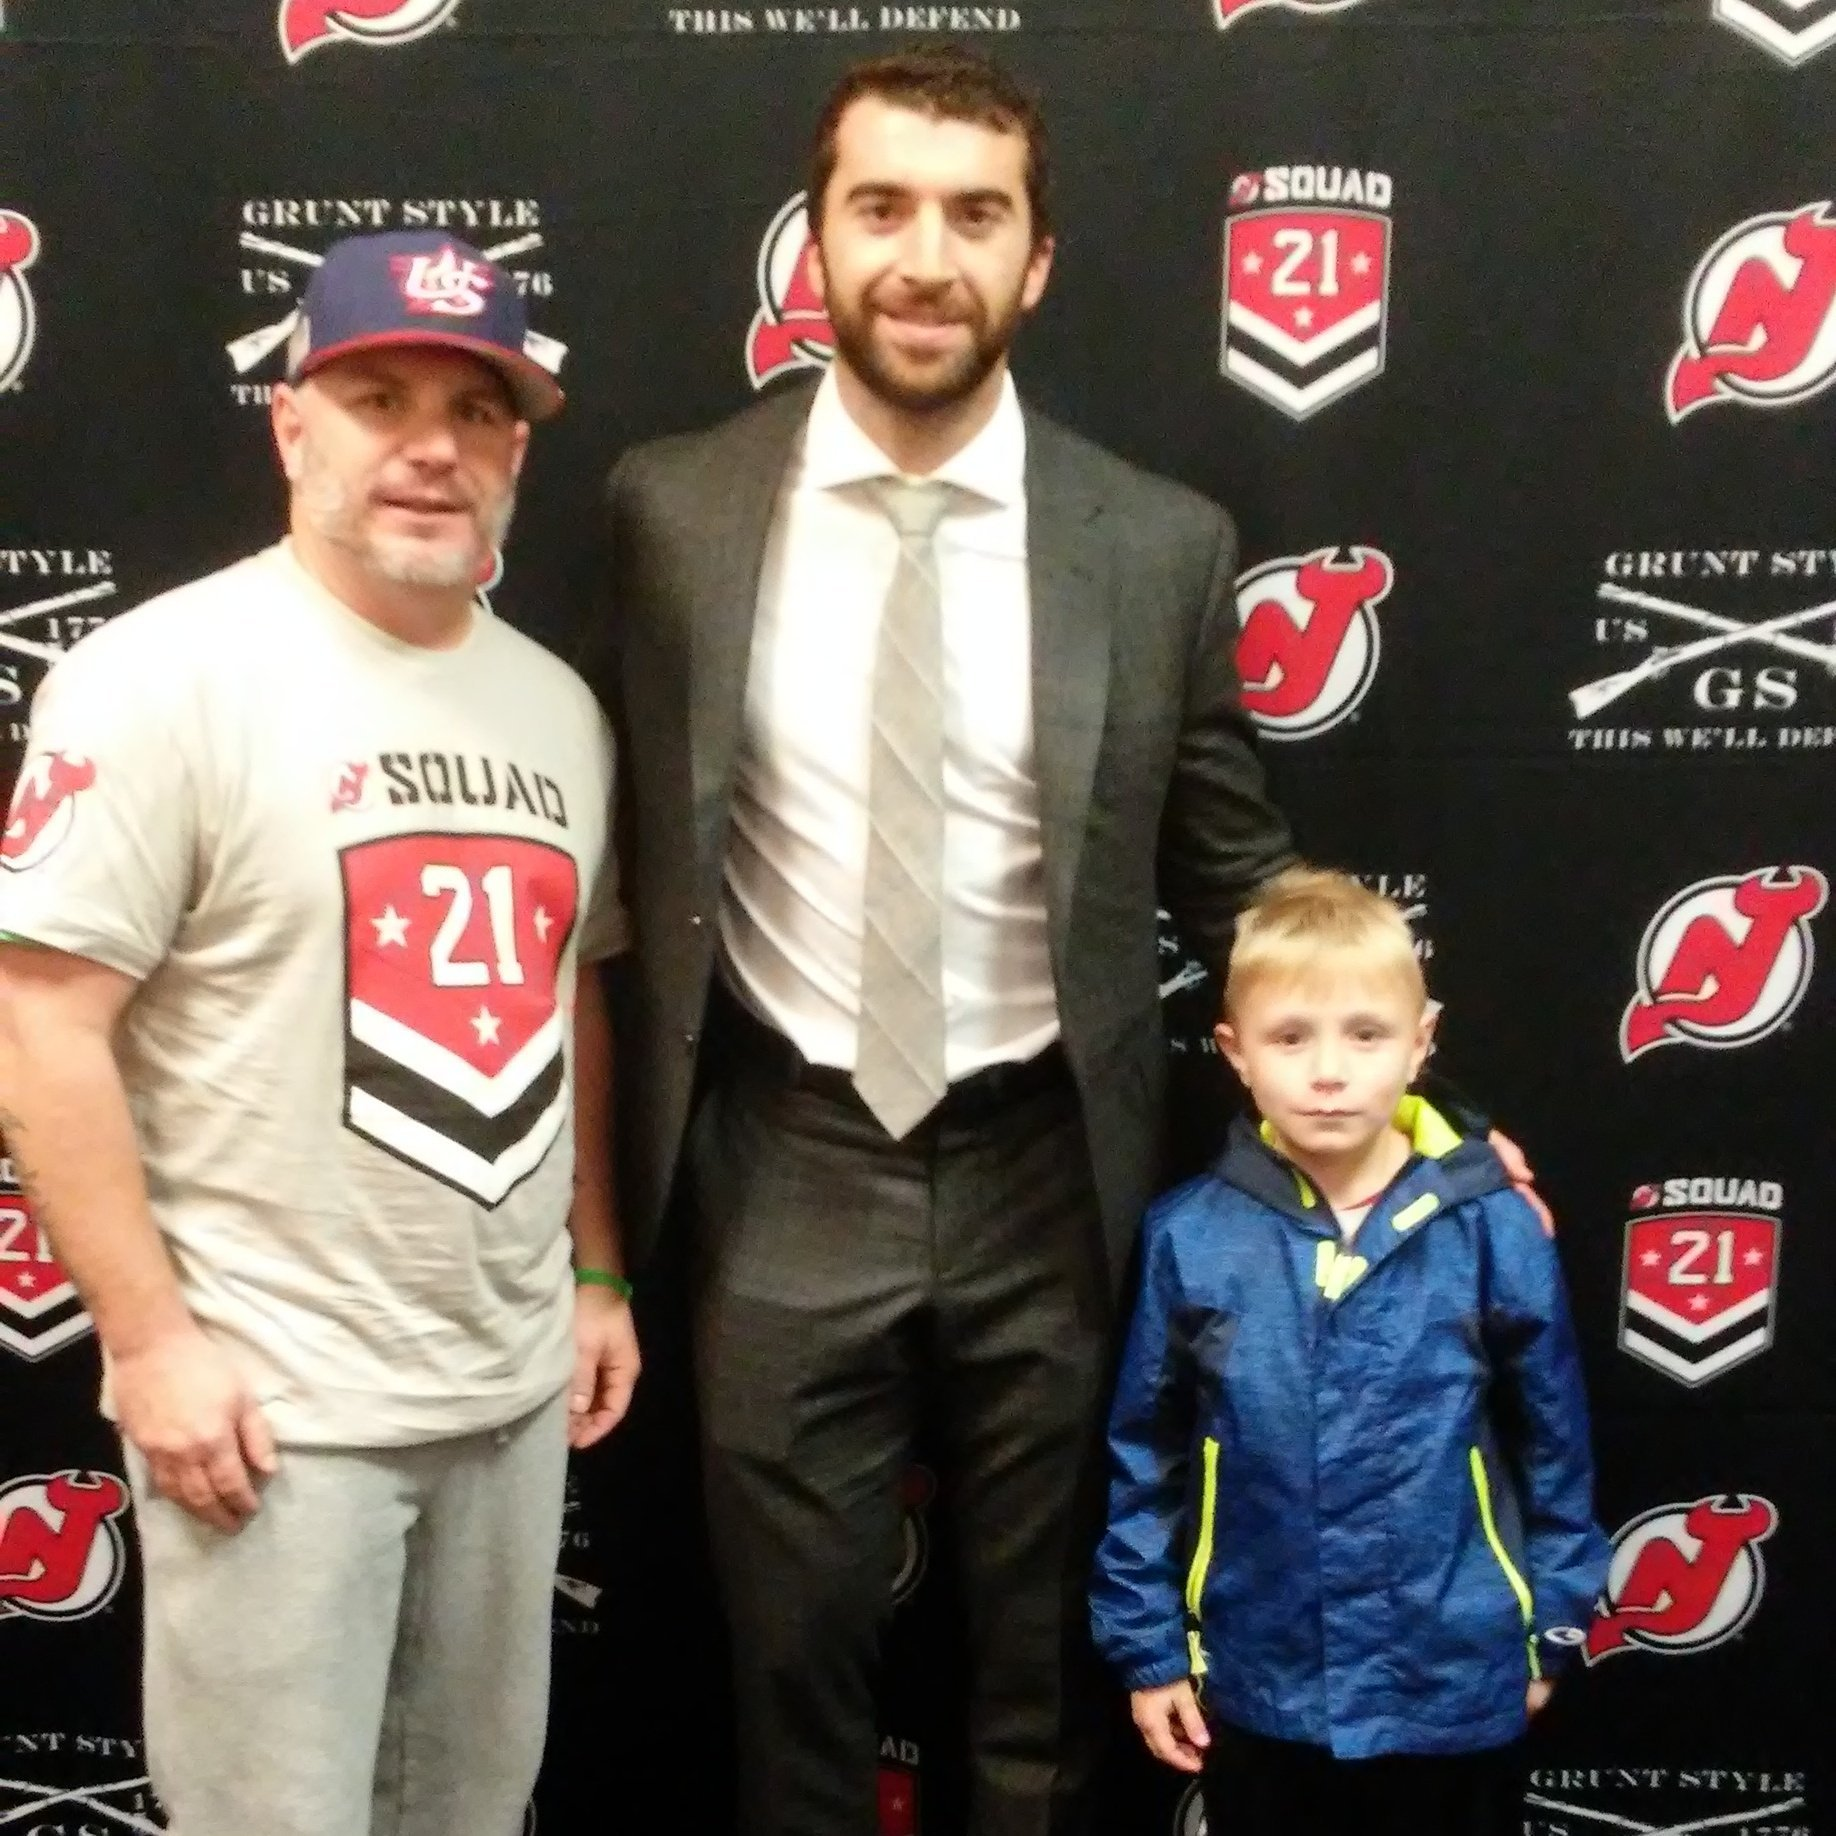 Thank you messages to veteran tickets foundation donors joseph attended new jersey devils vs st louis blues nhl 21 squad m4hsunfo